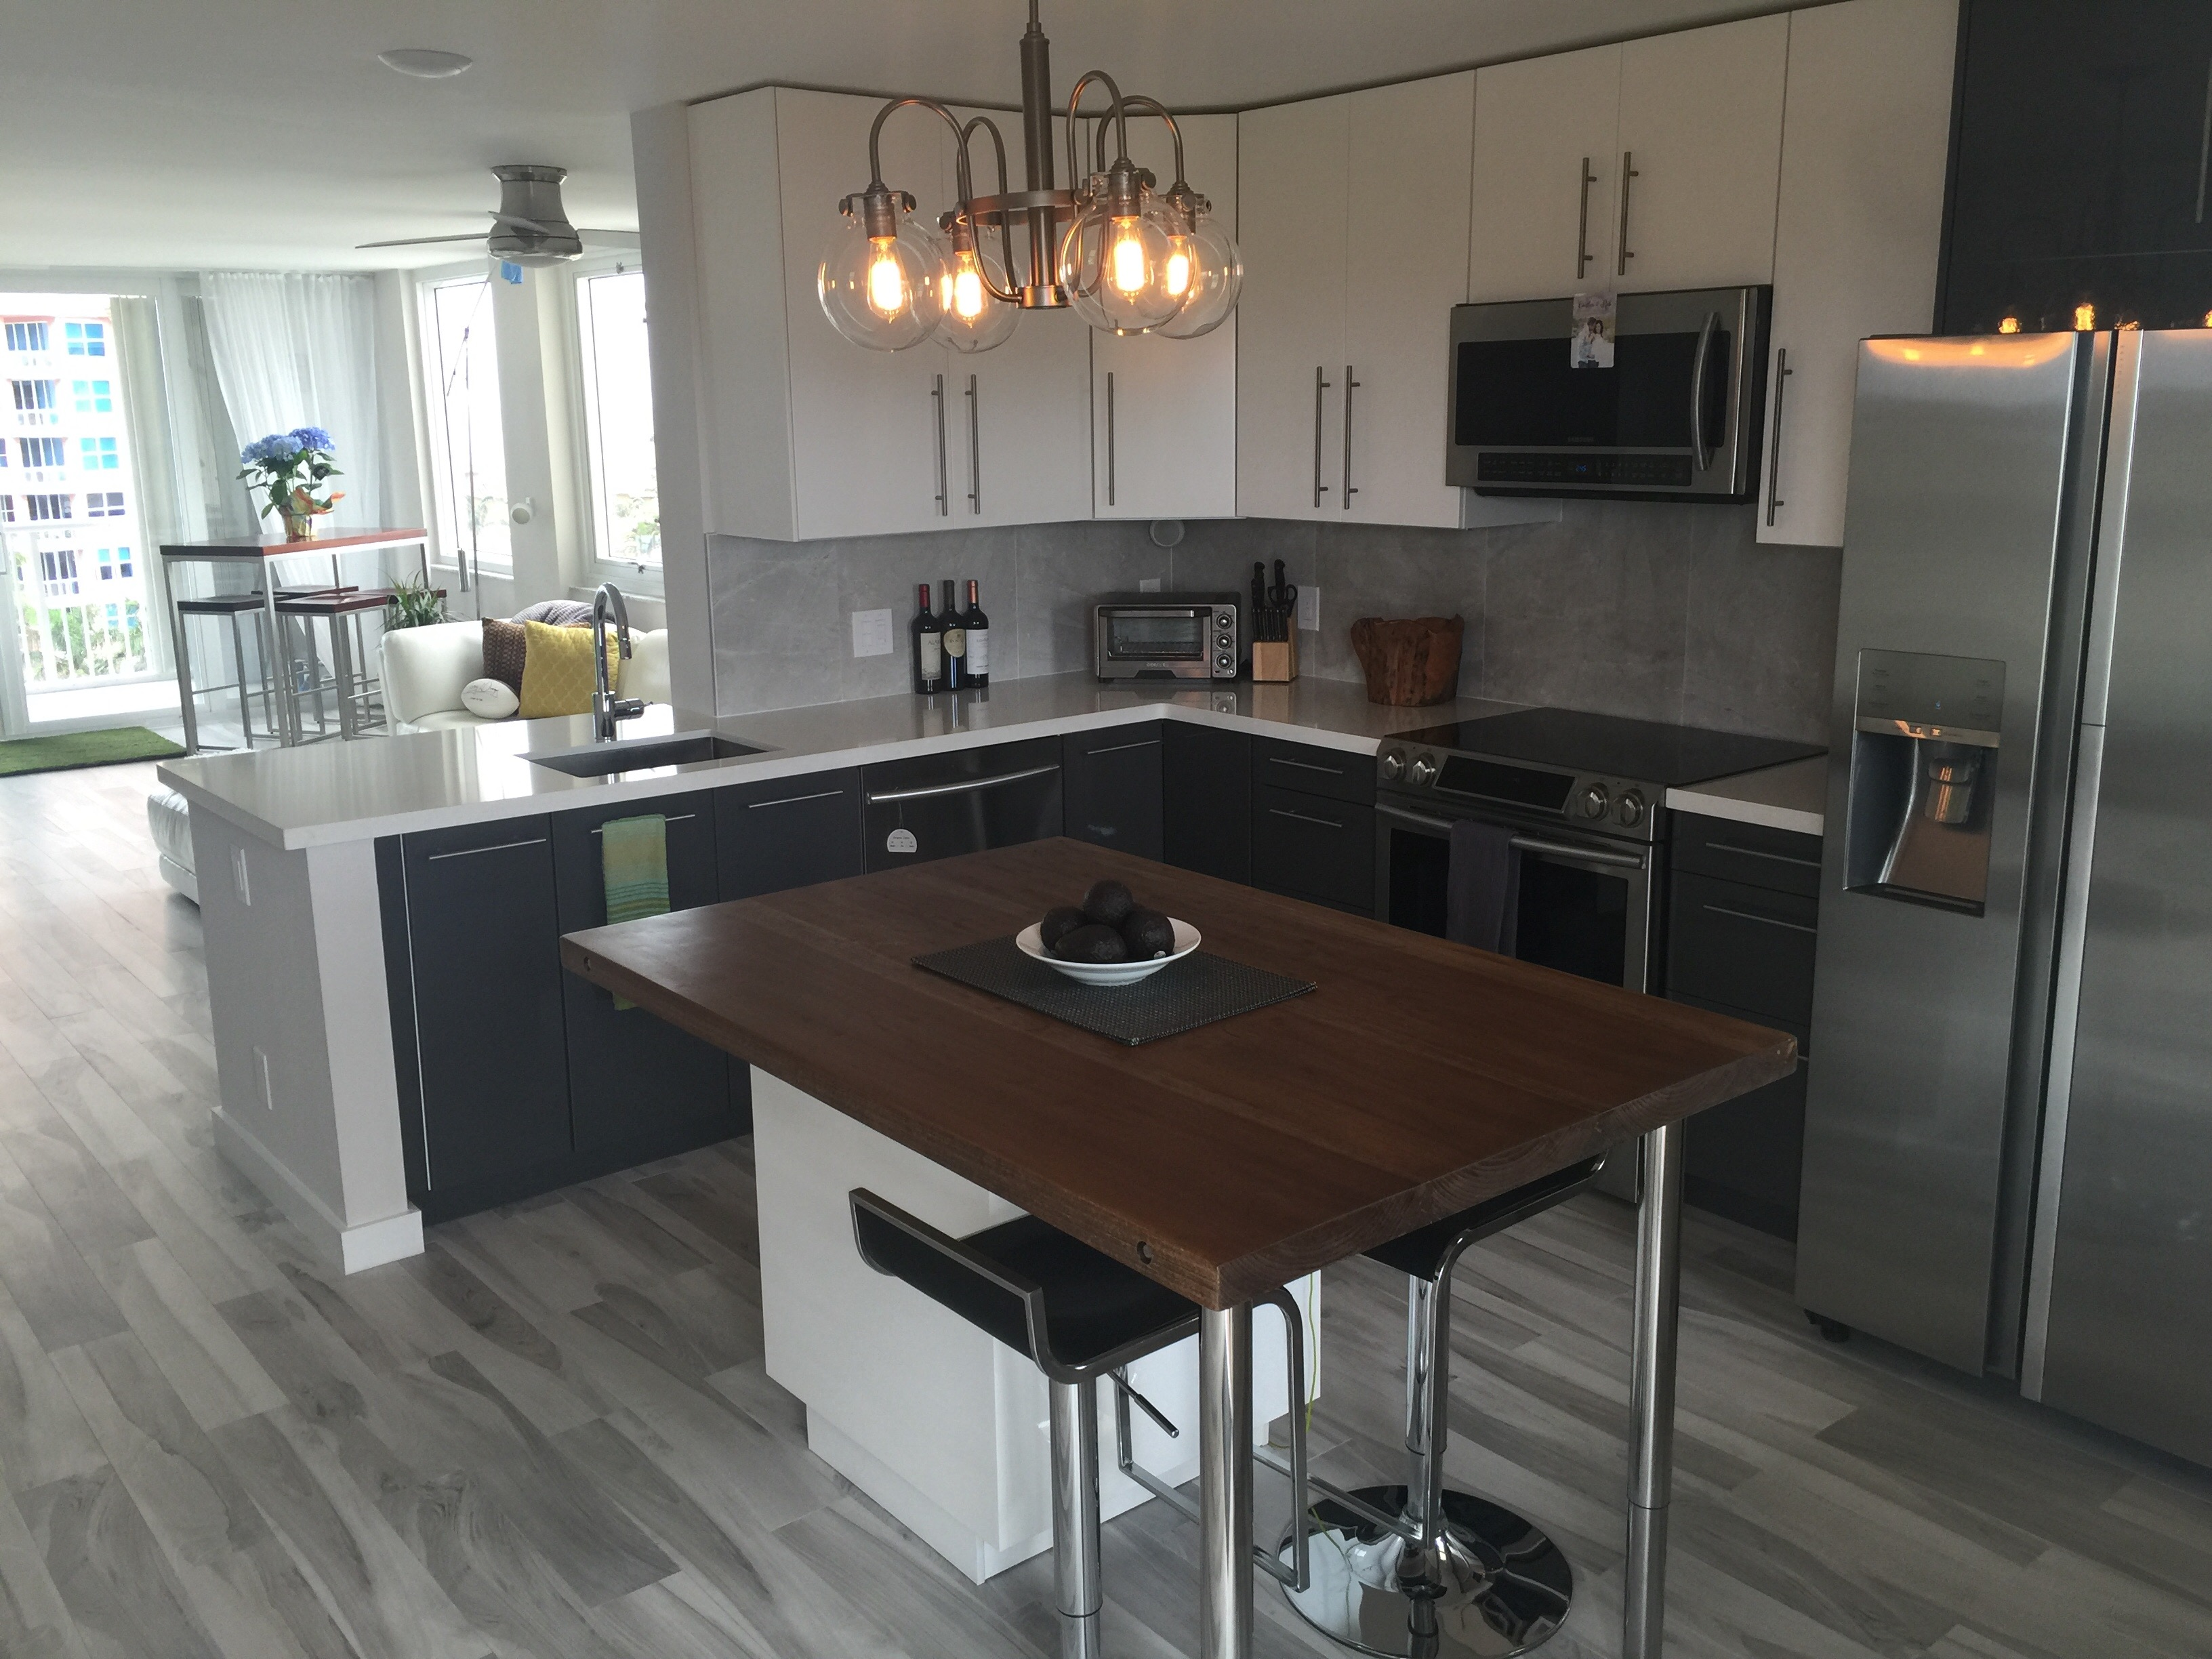 Design Flair for a HighRise Condo IKEA Kitchen